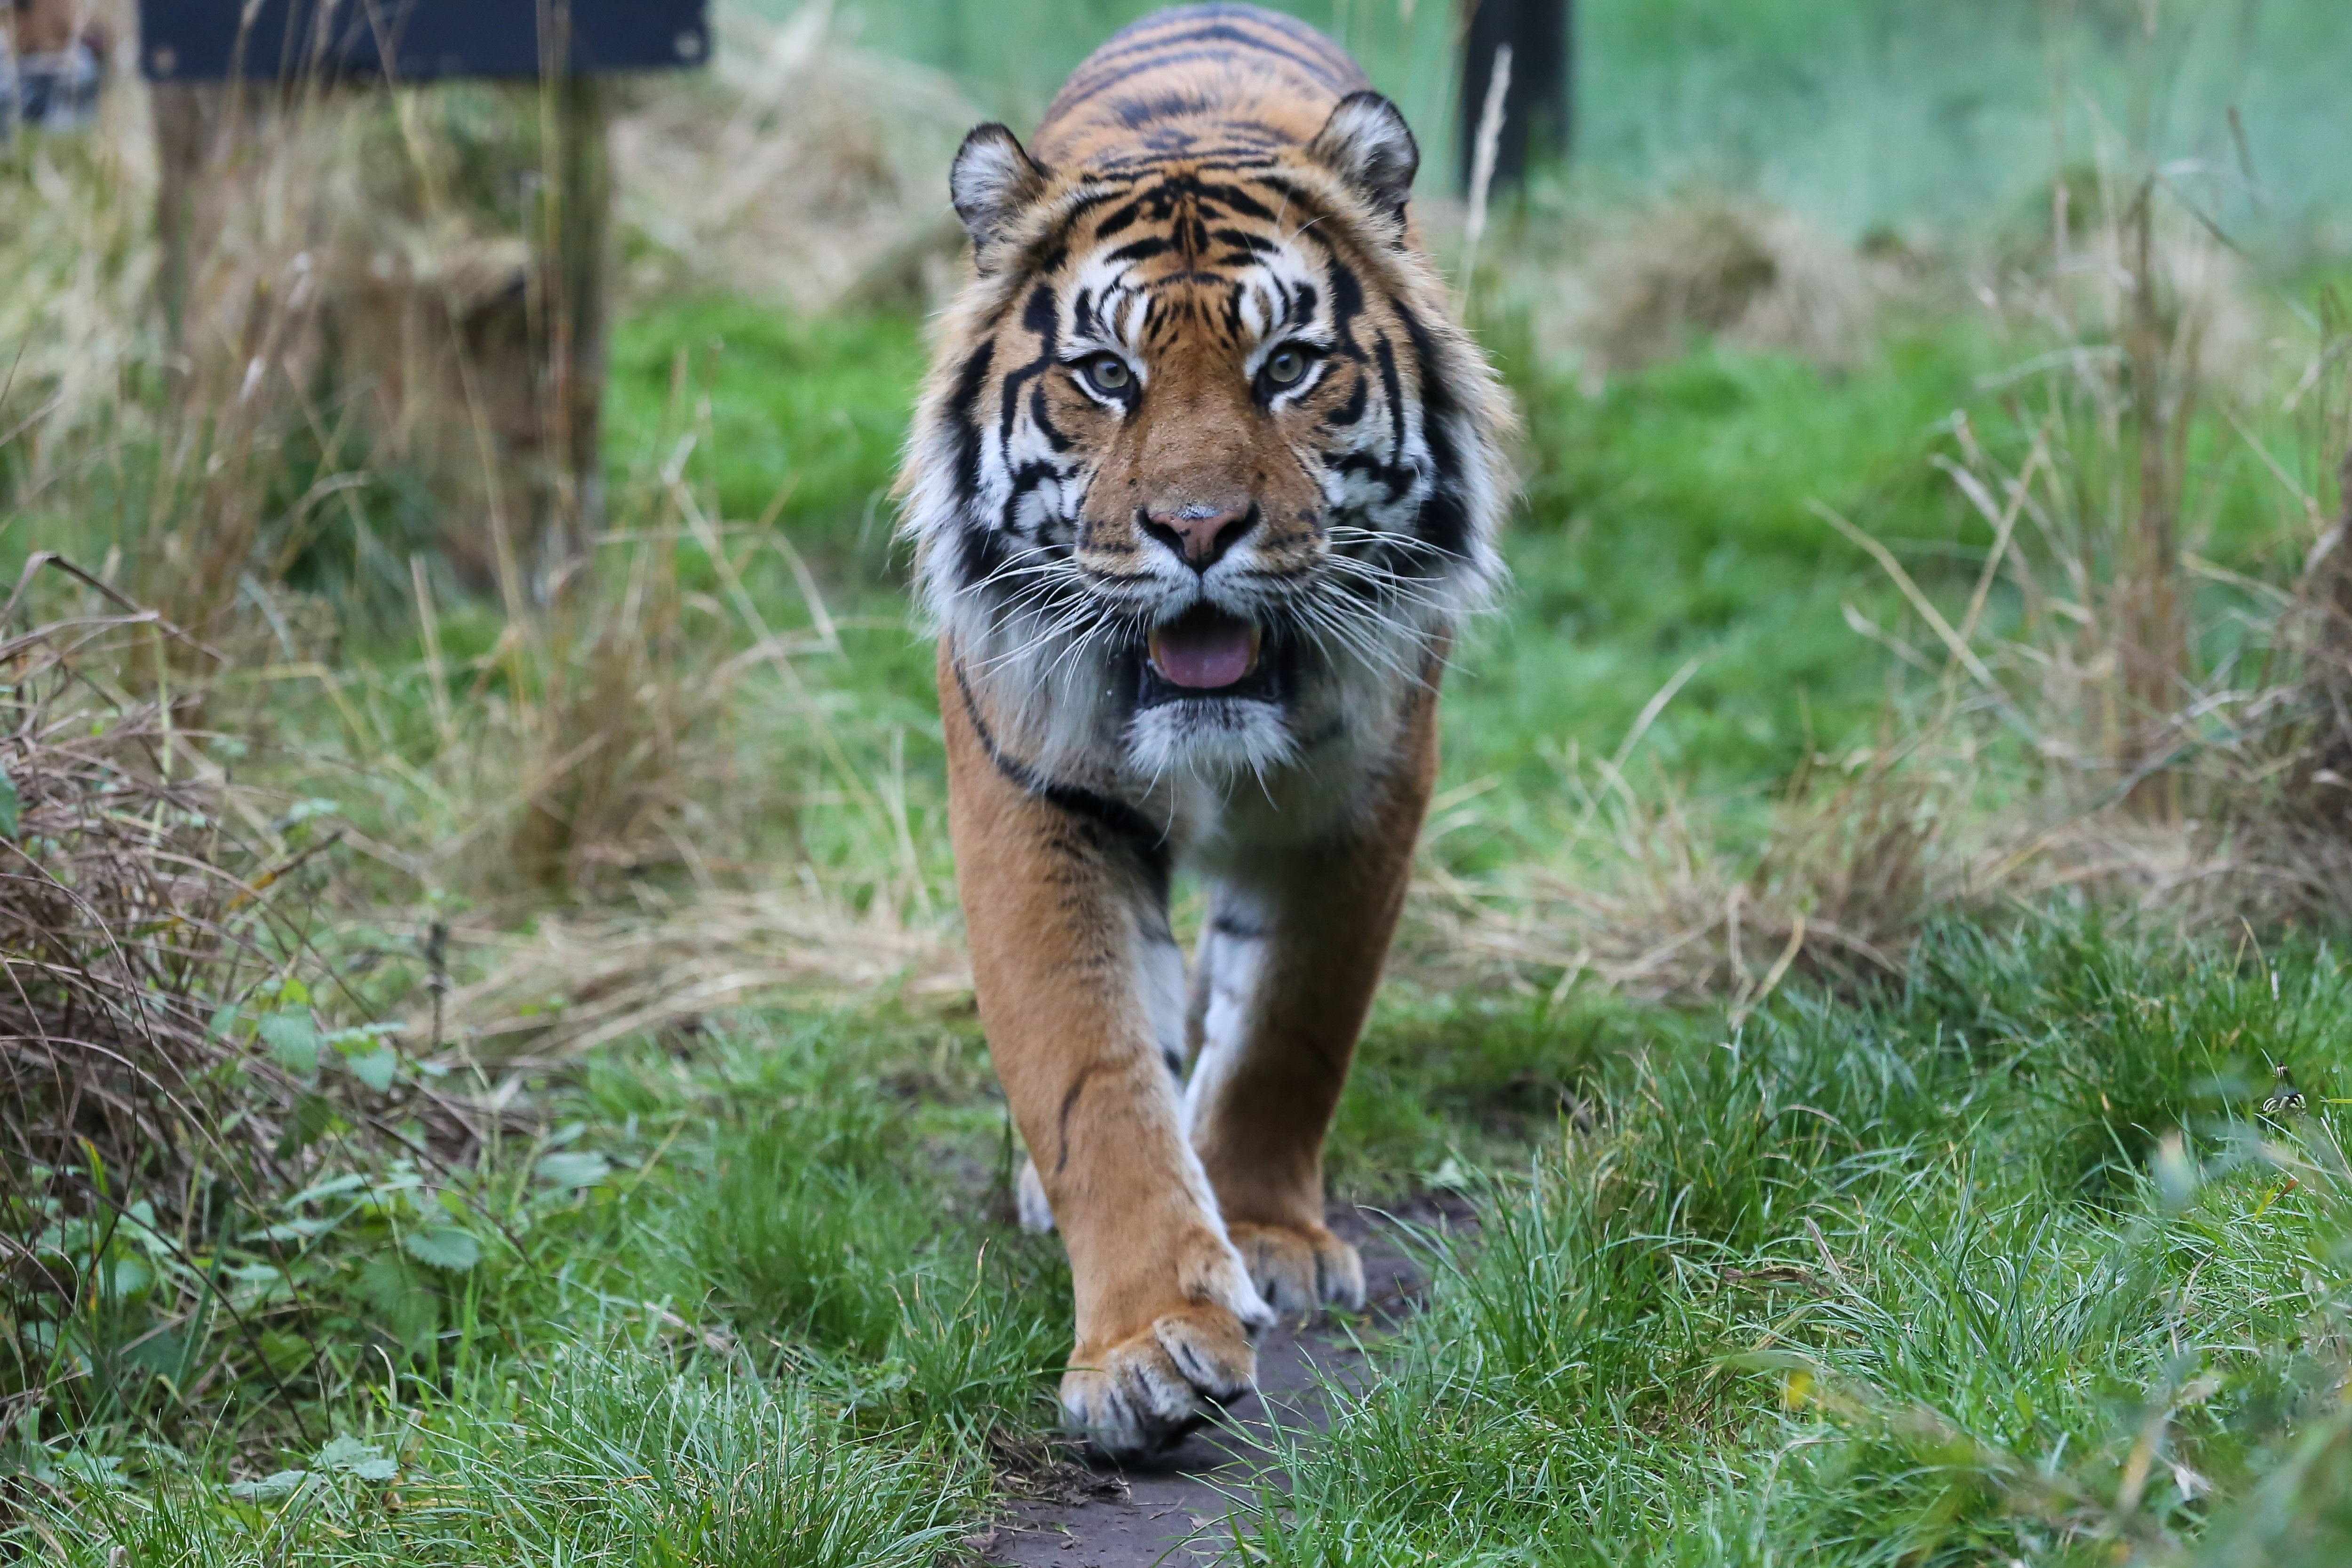 LONDON, UNITED KINGDOM - 2019/01/03: File Picture of the Sumatran Tigress Melati seen at London Zoo. It has been reported that on the 8th February 2019, ten year old Sumatran Tigress Melati was killed while being introduced to a new 7 year old male Asim at London Zoo. (Photo by Dinendra Haria/SOPA Images/LightRocket via Getty Images)